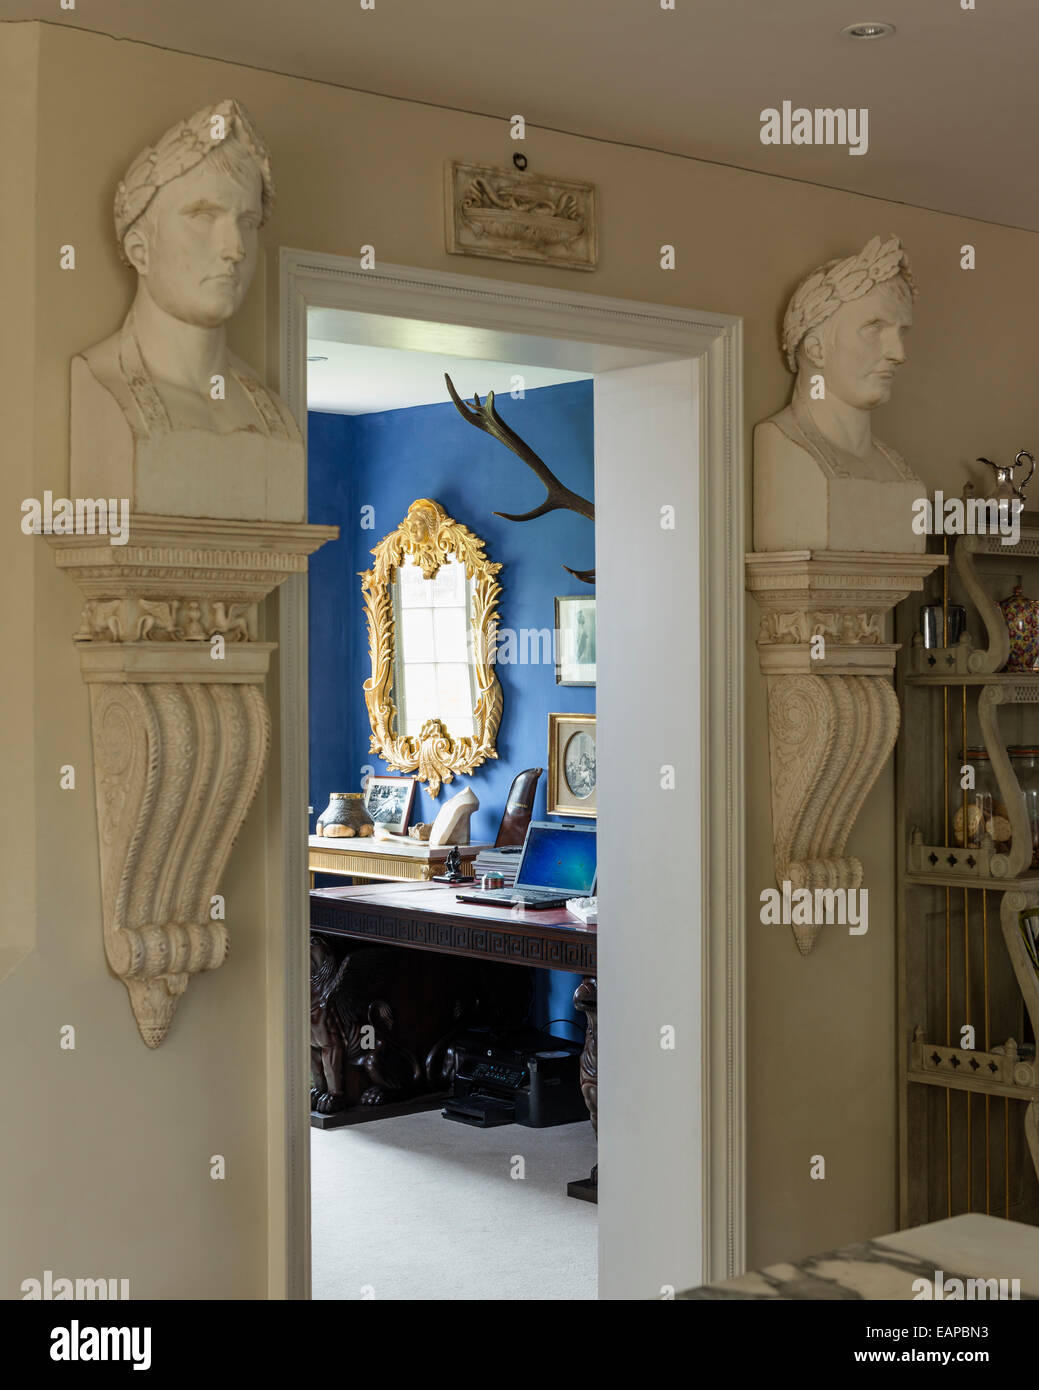 Pair of Julius Caesar busts flank the entrance to a study - Stock Image